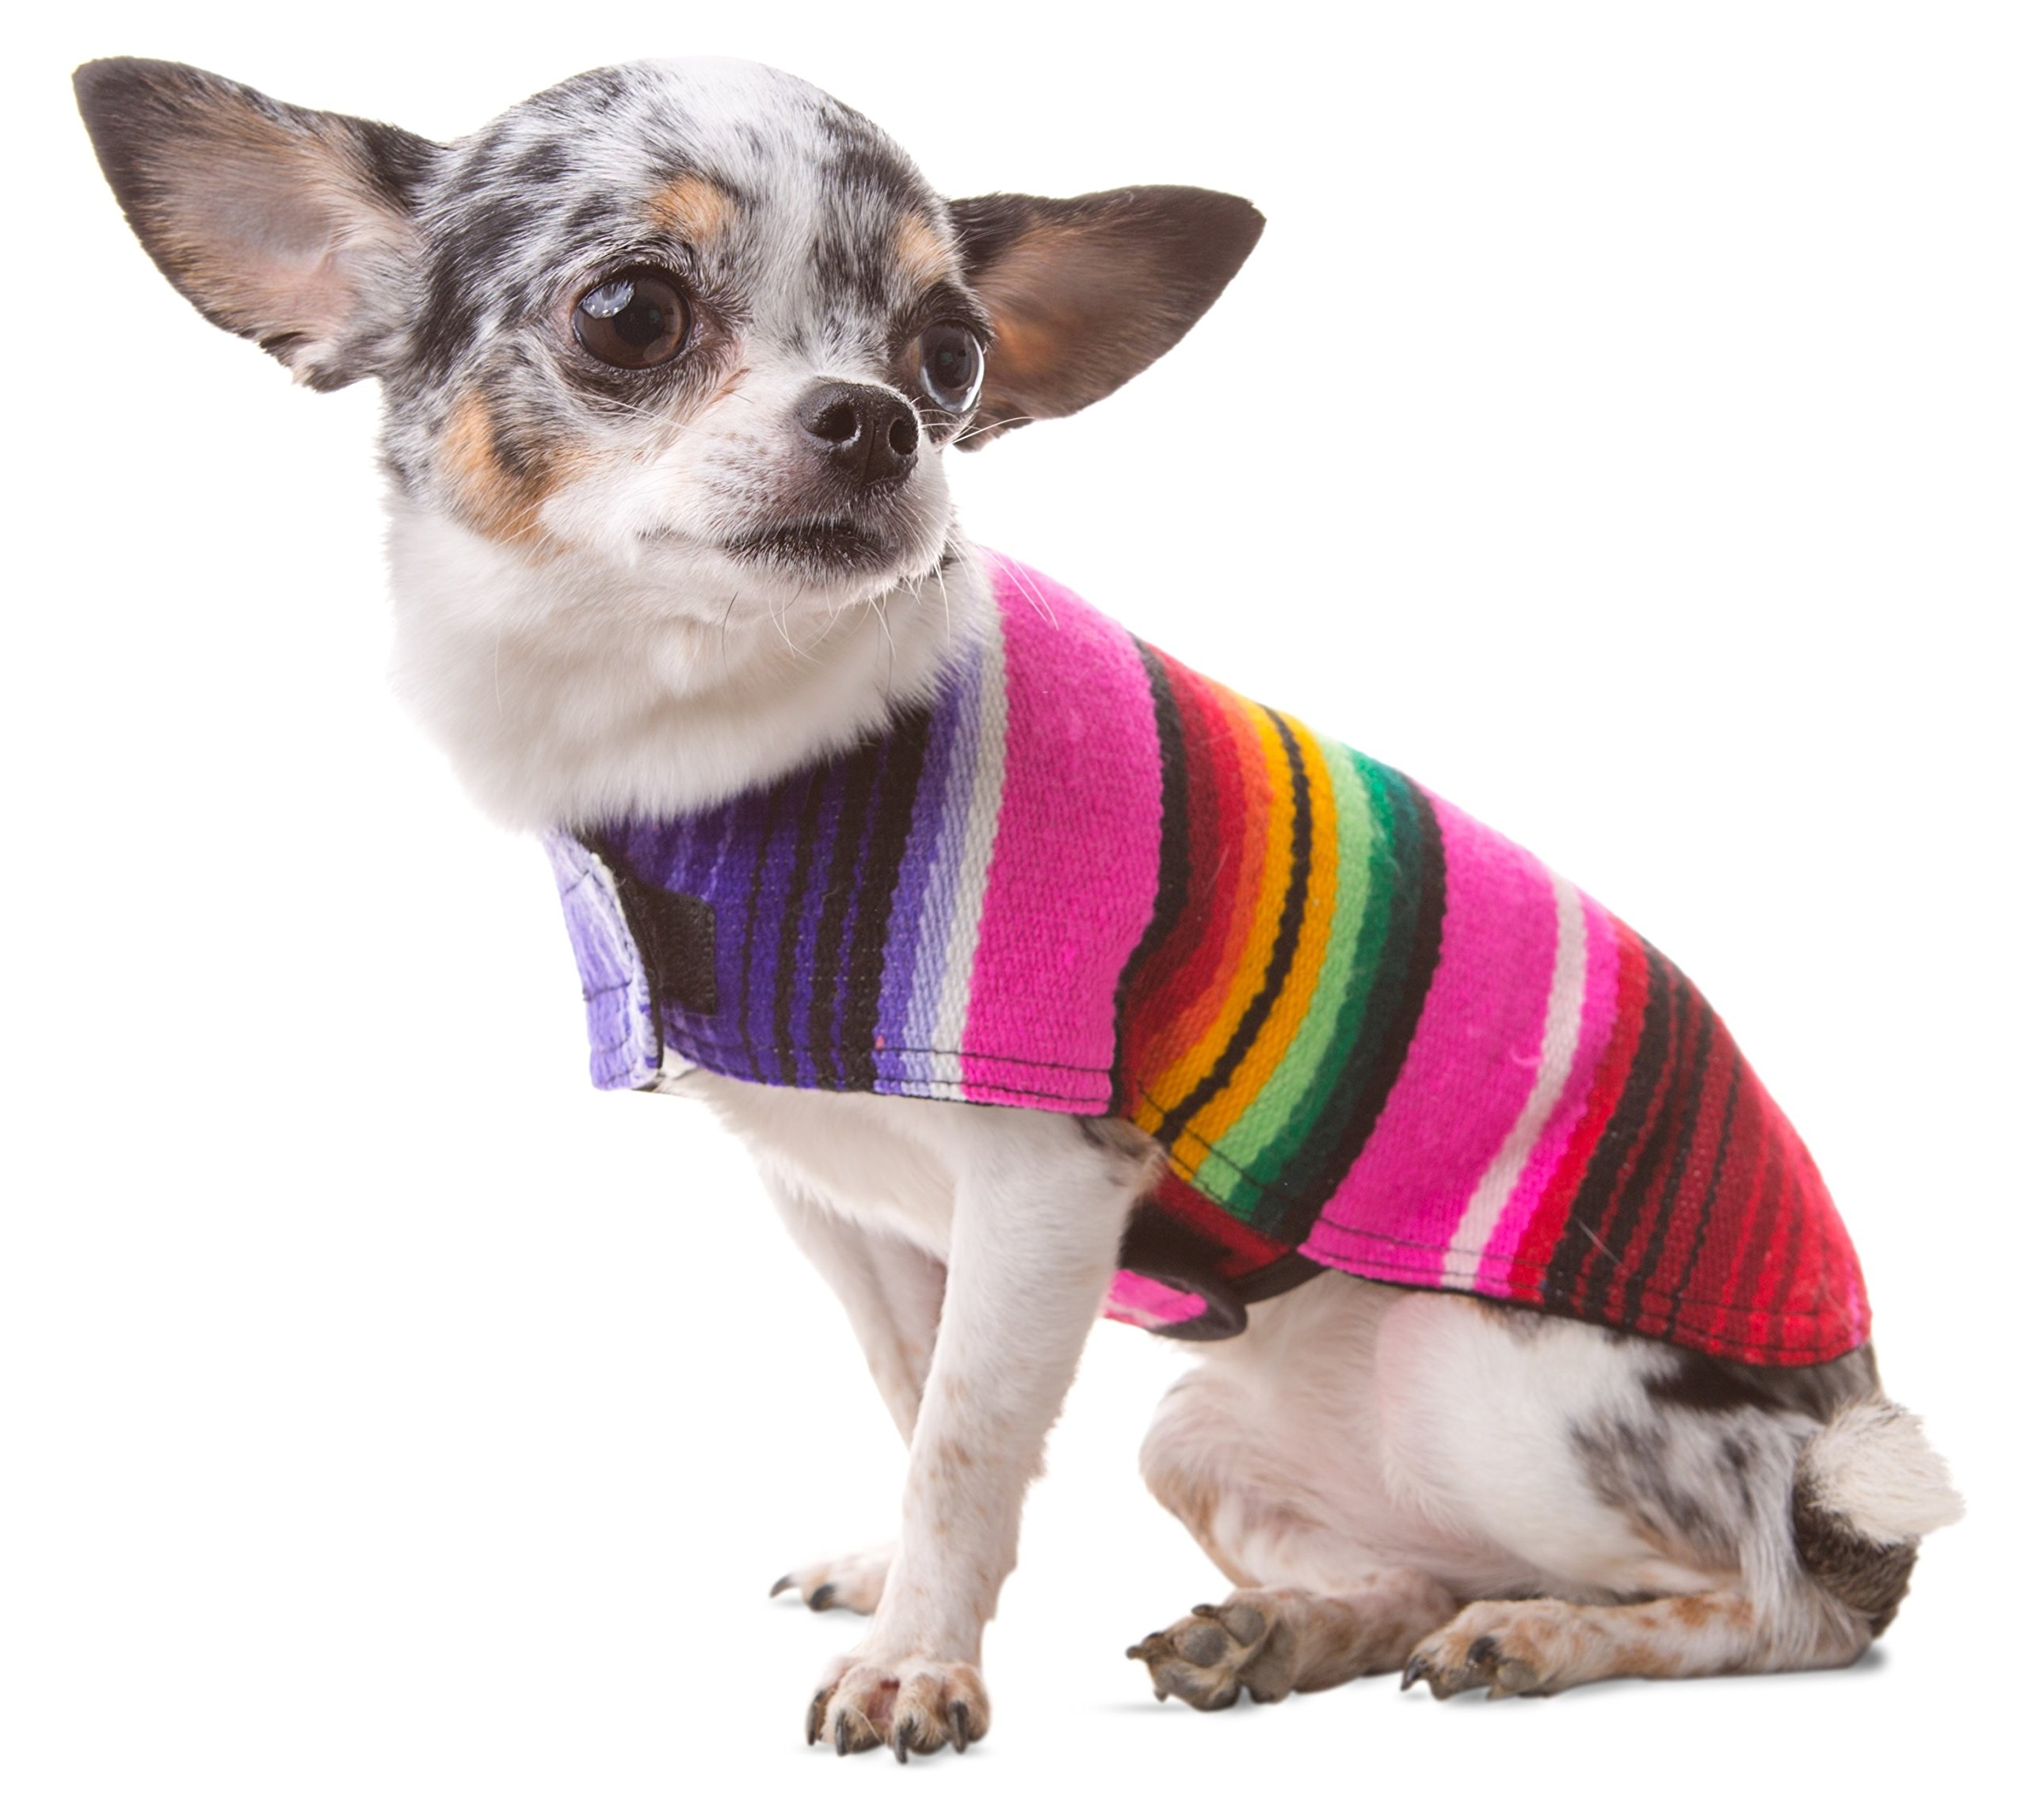 Baja Ponchos Dog Clothes - Handmade Dog Poncho from Authentic Mexican Blanket (Pink No Fringe, X-Small)